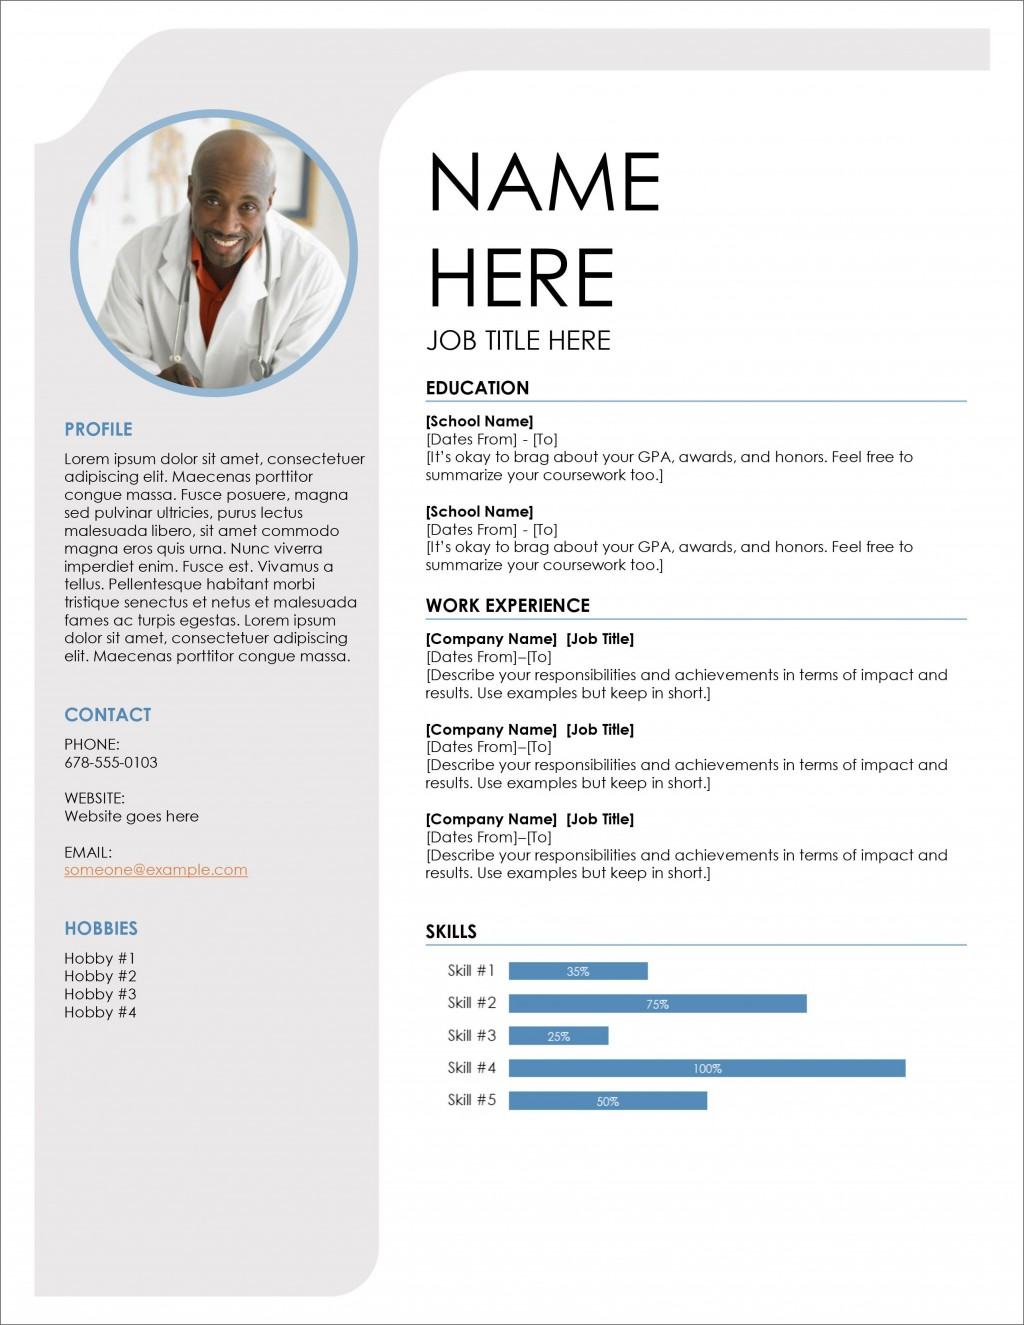 005 Wonderful Download Resume Template Microsoft Word Photo  Creative Free For Fresher FunctionalLarge